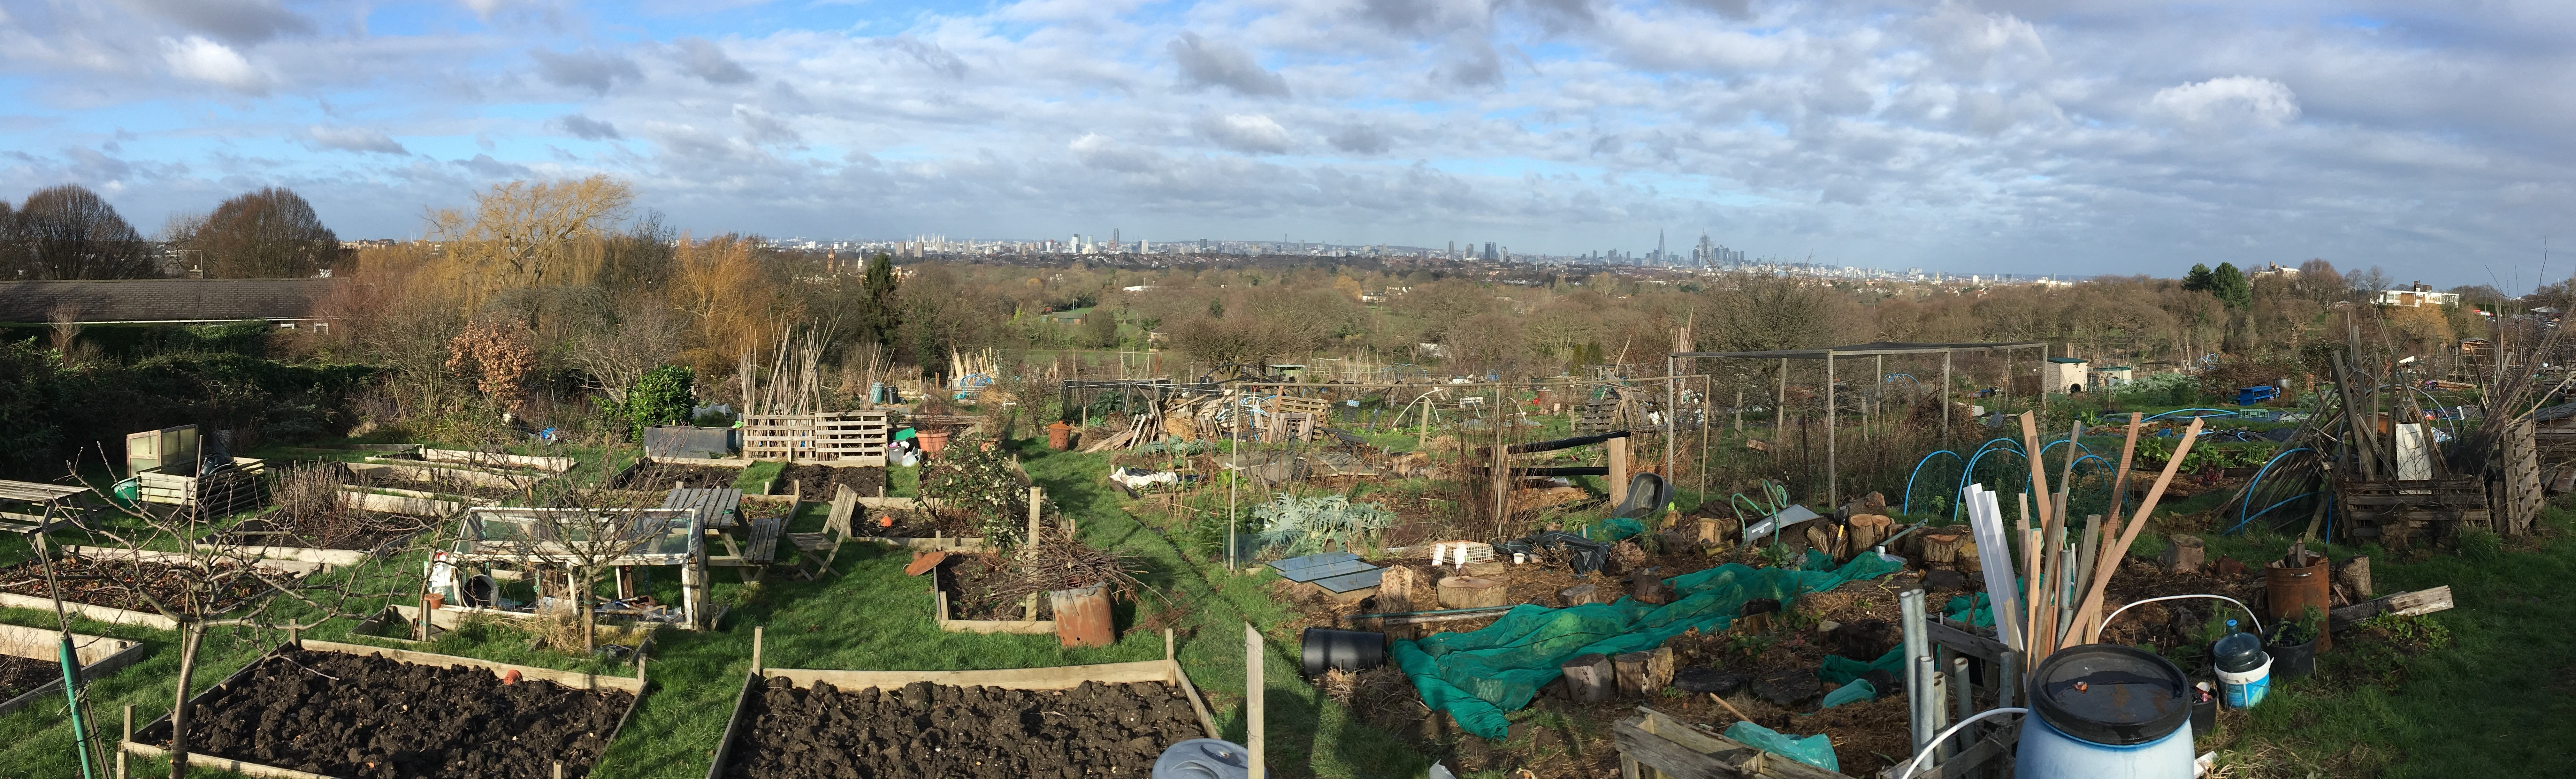 GRANGE LANE ALLOTMENTS